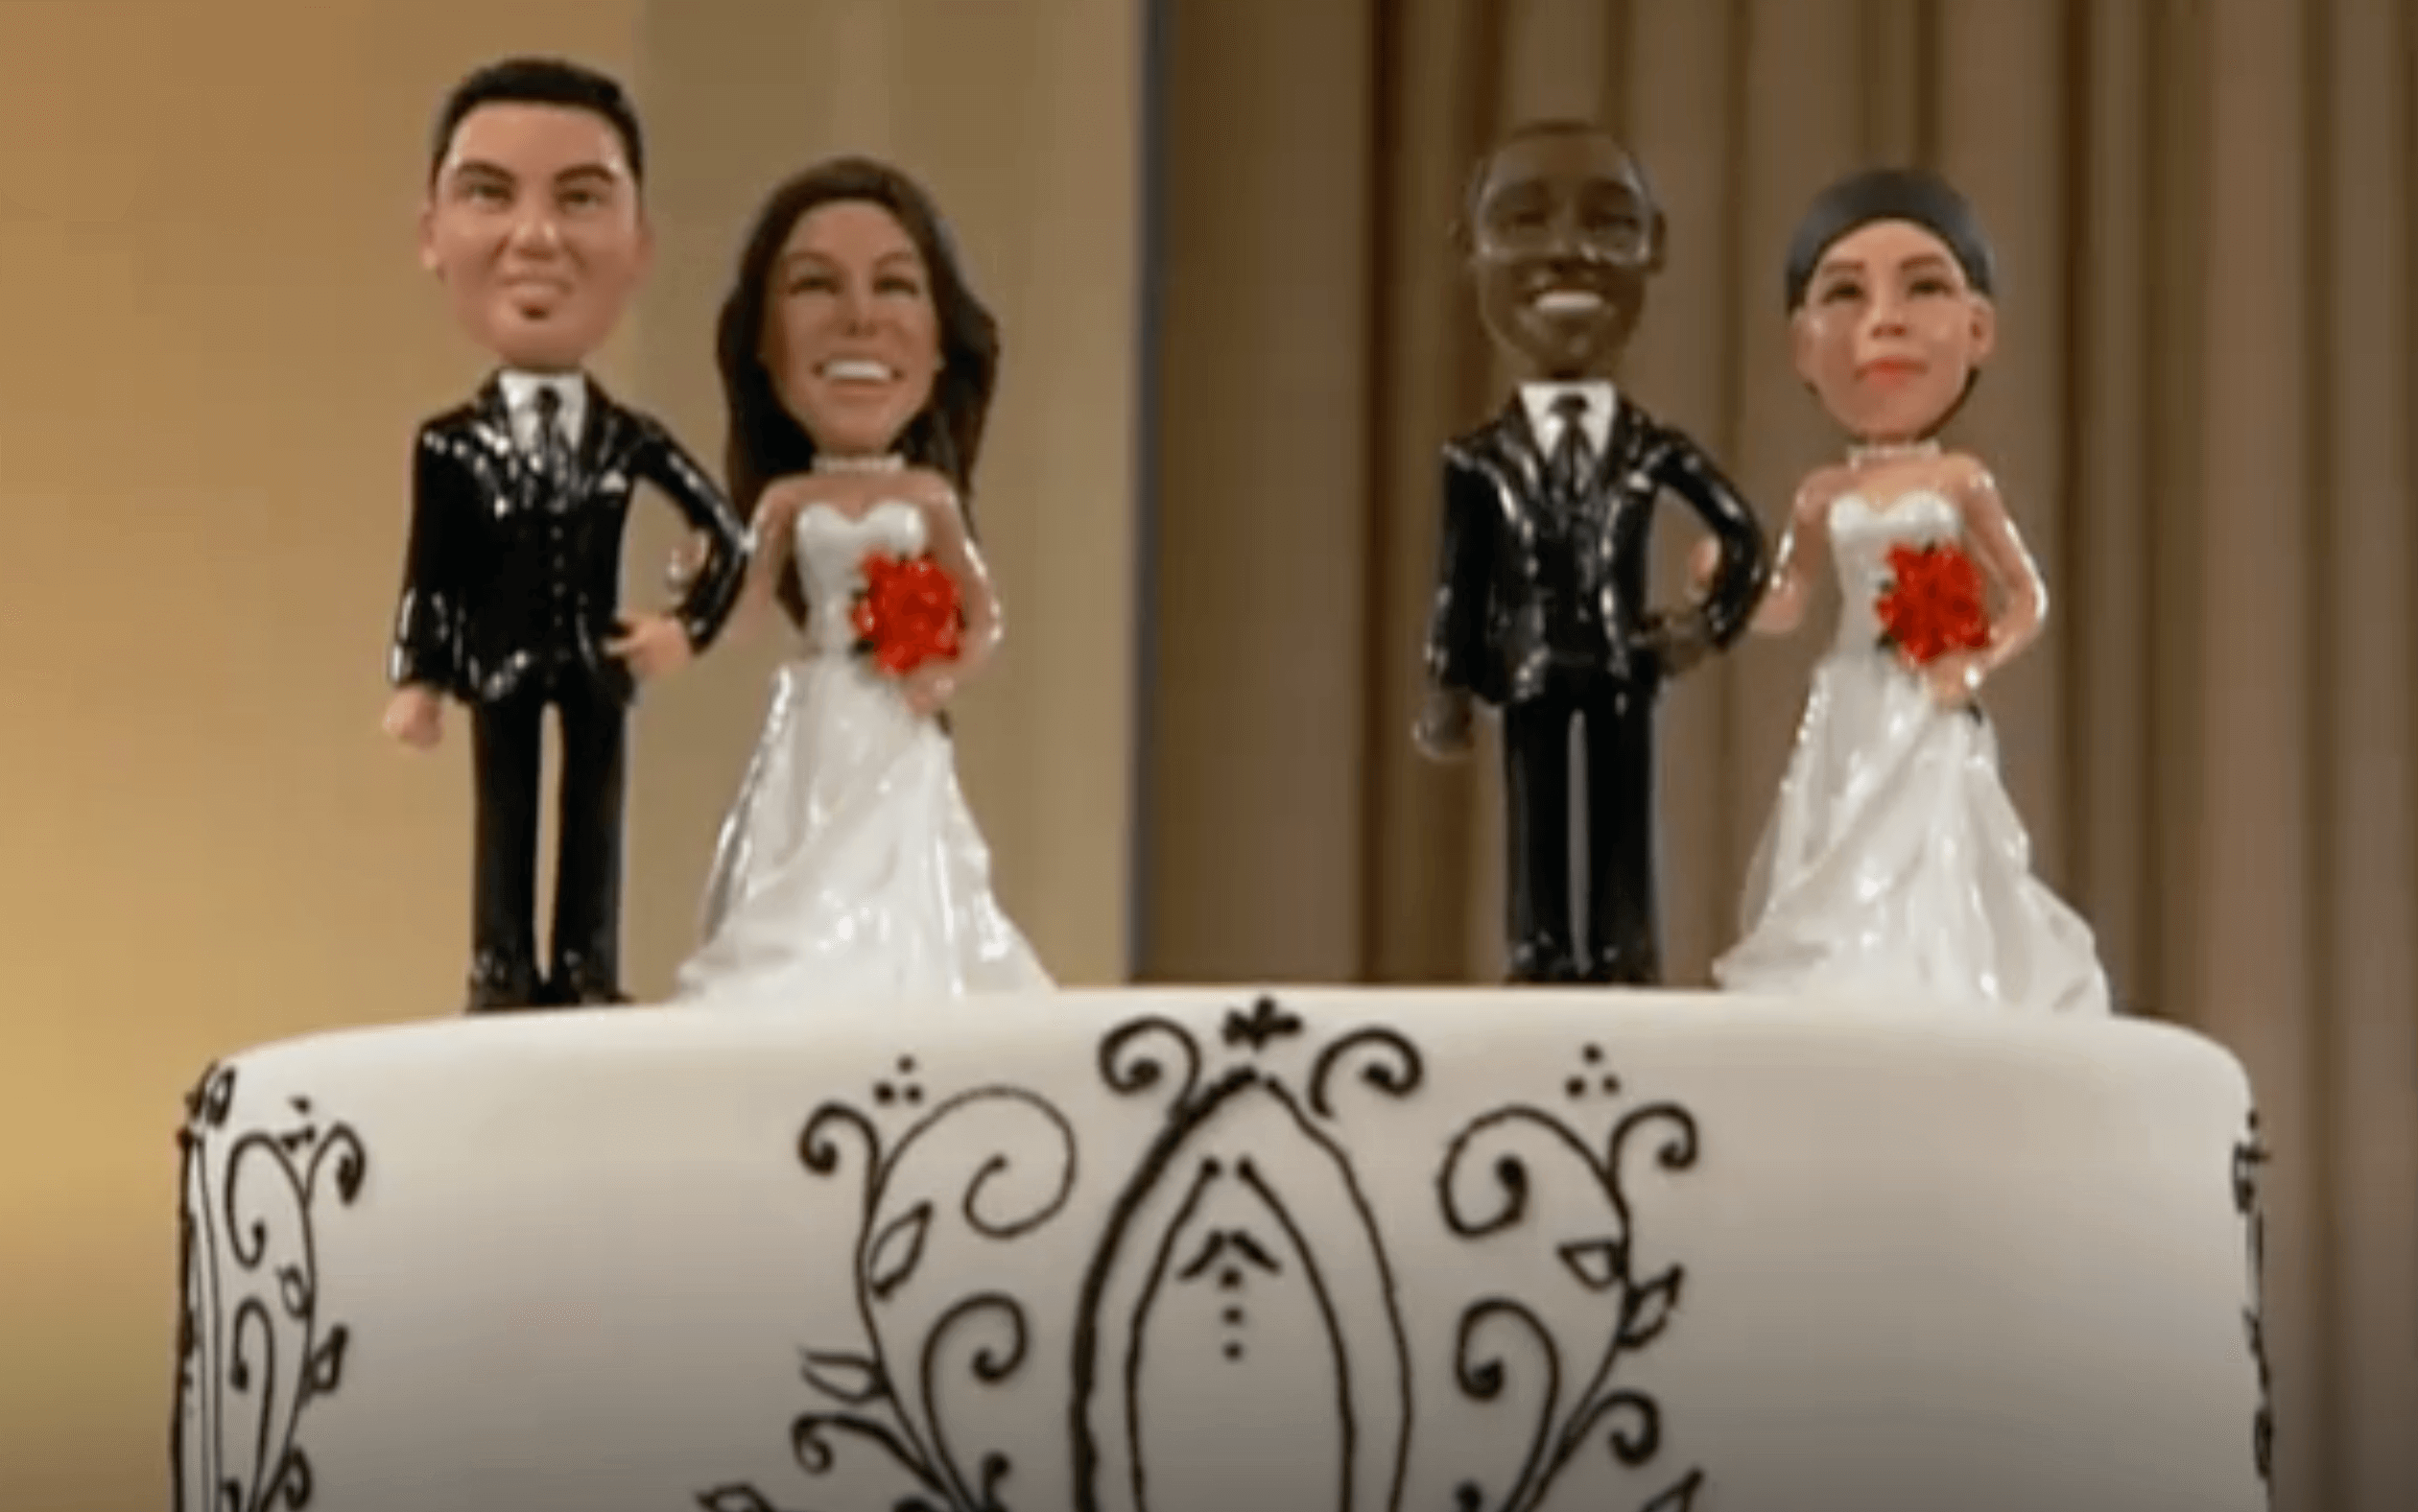 wedding cake toppers from Tough Love Couples TV show